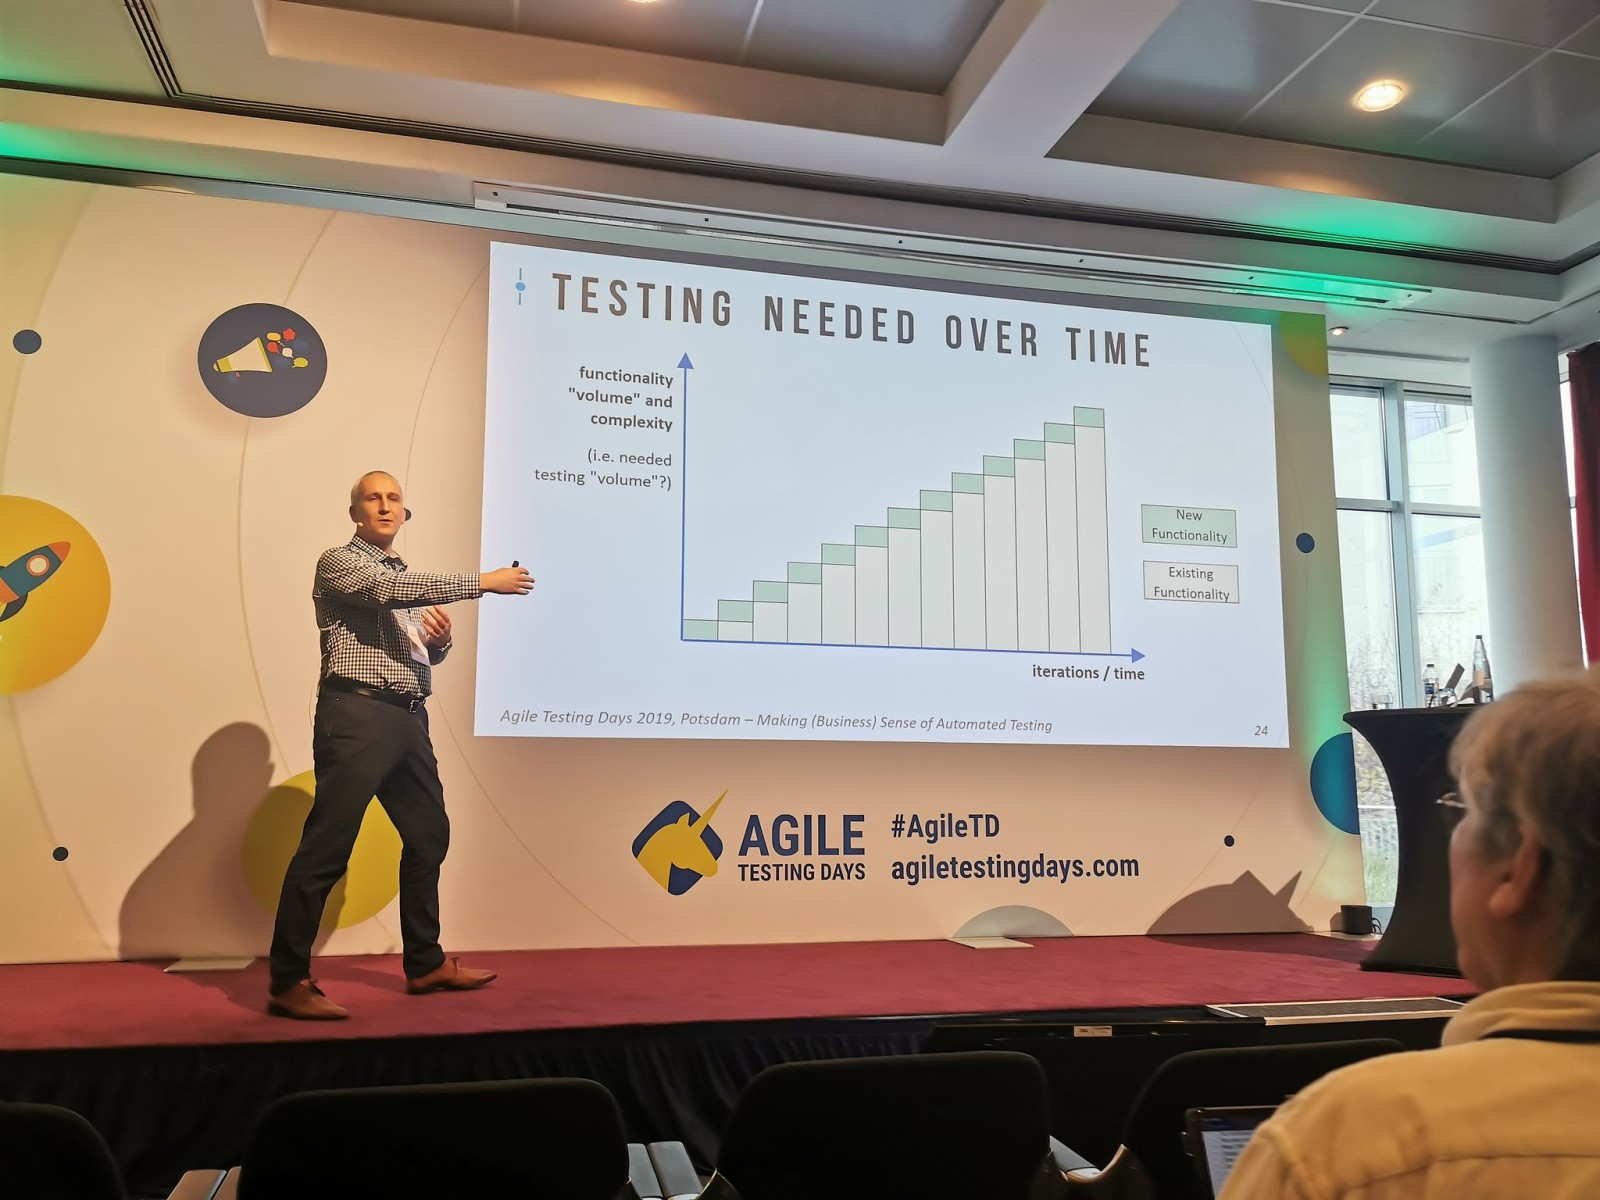 Making (Business) Sense of Automated Testing